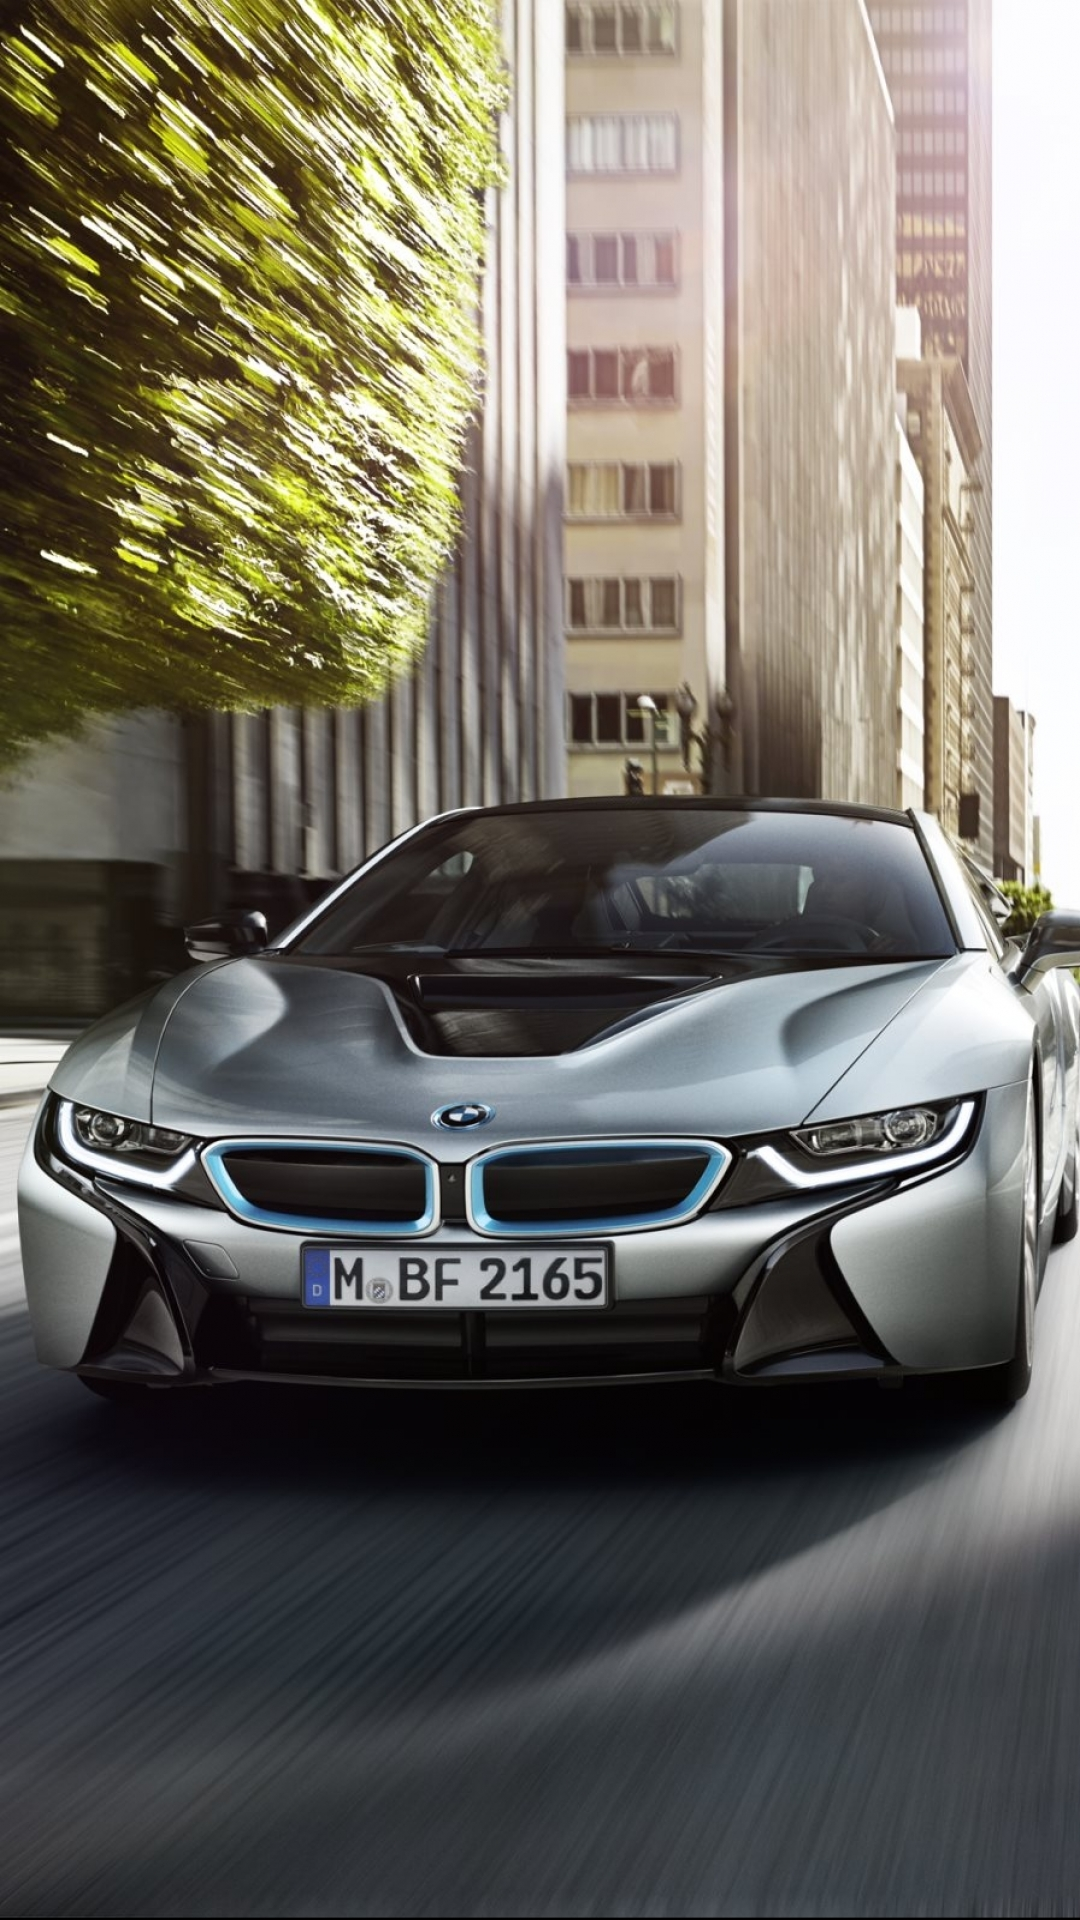 vehicles/bmw i8 (1080x1920) wallpaper id: 79478 - mobile abyss